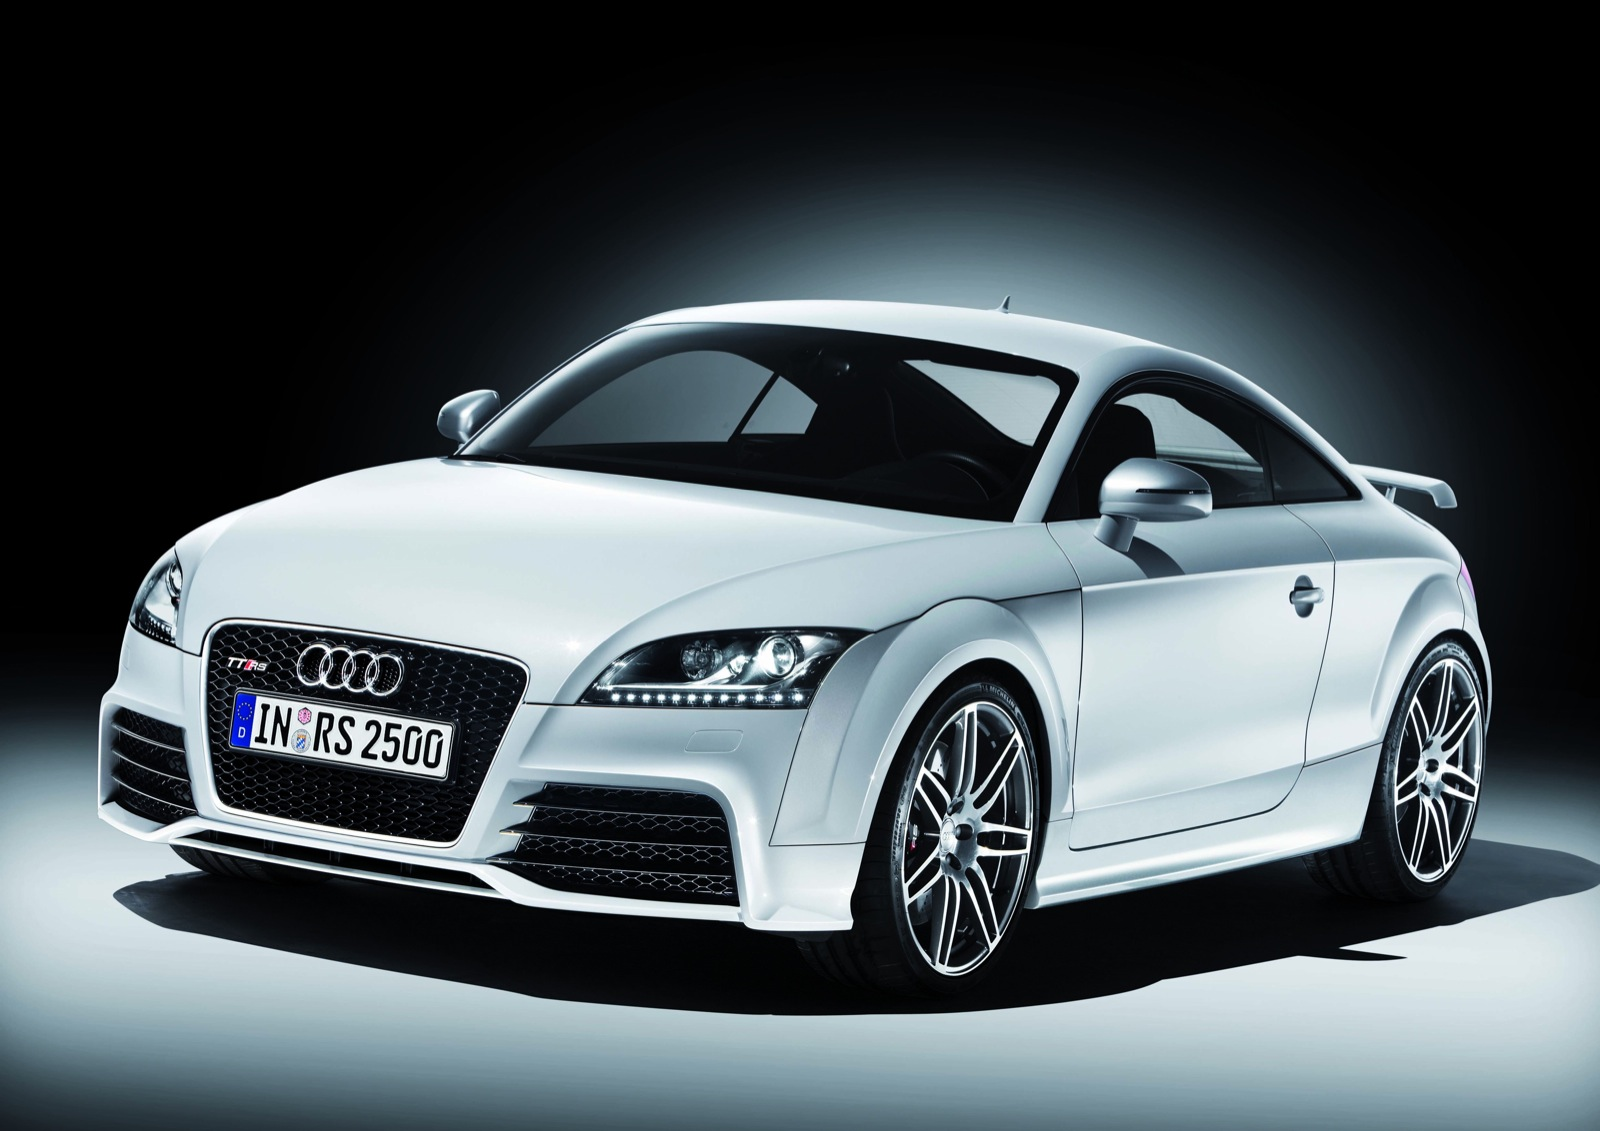 2012 Audi Tt Review Ratings Specs Prices And Photos The Car Connection